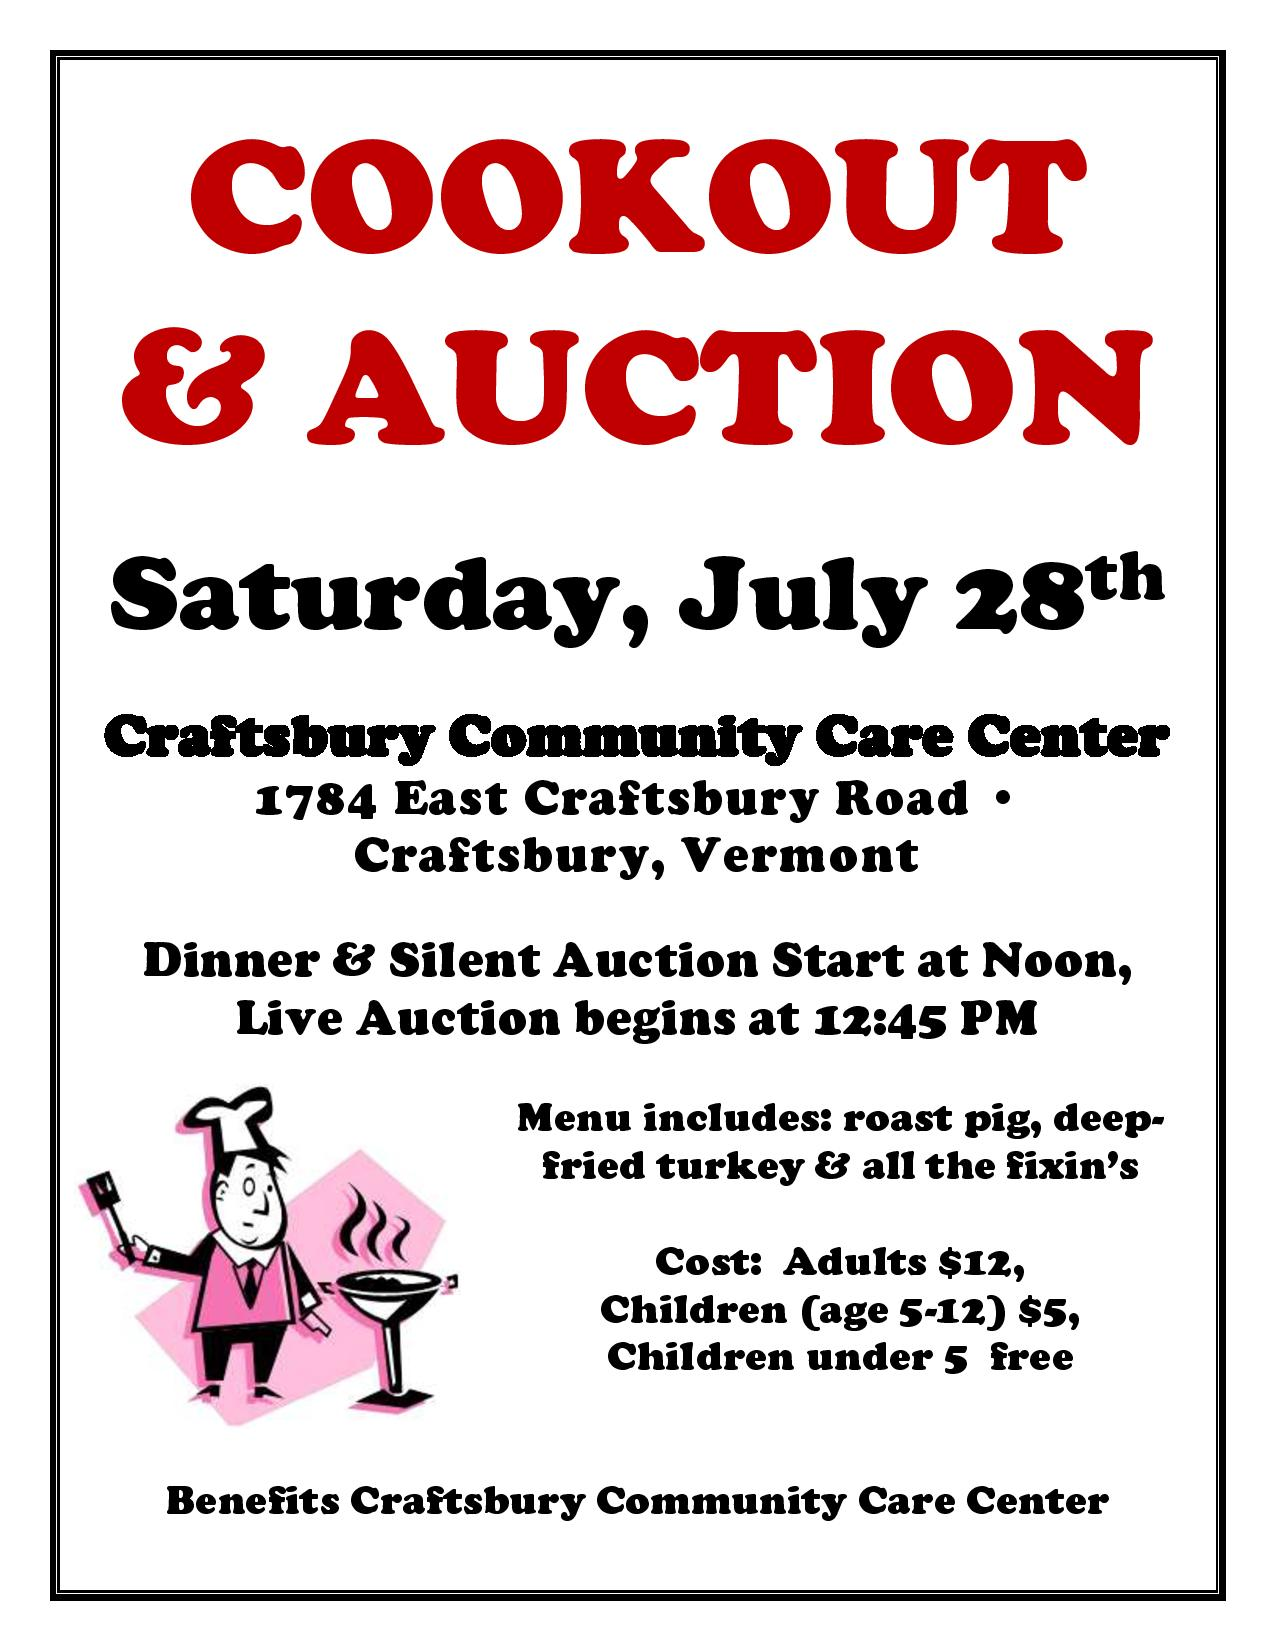 COOKOUT AND AUCTION FLYER 2018-page-001.jpg